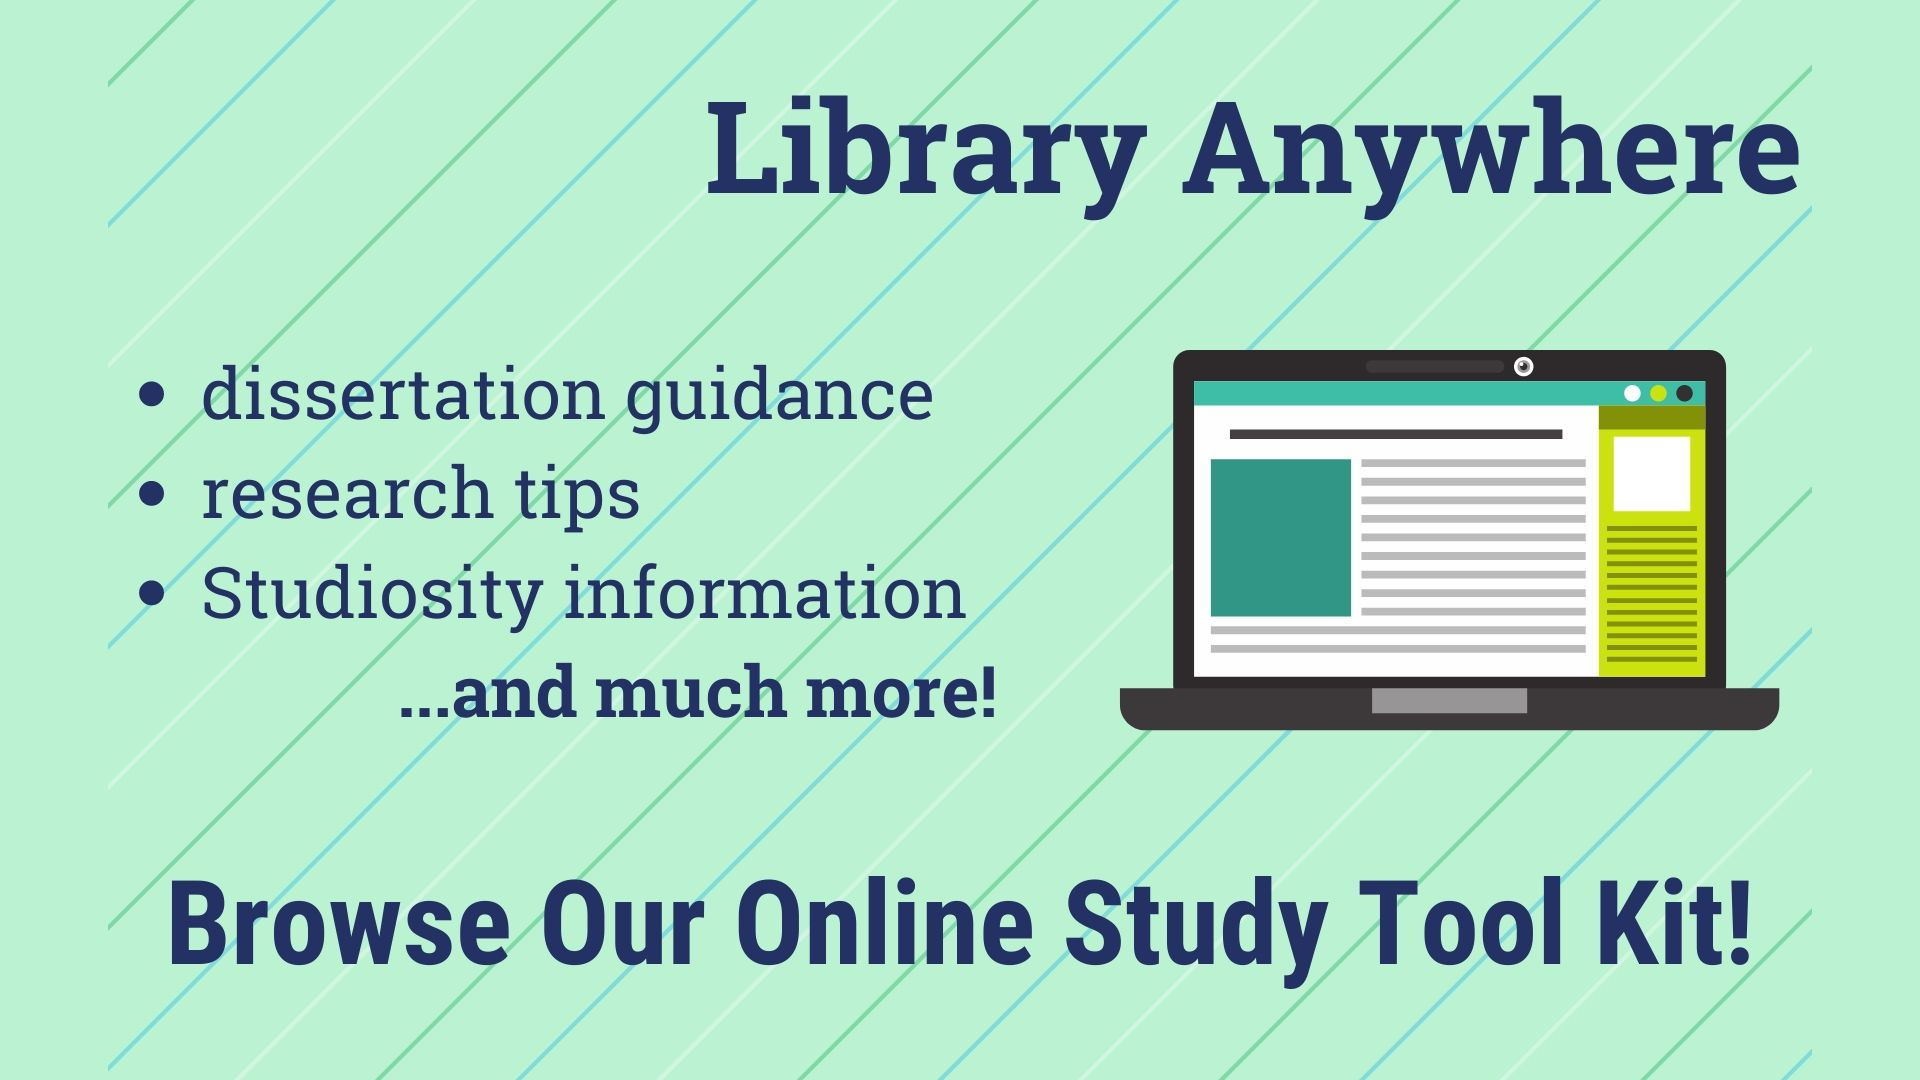 Browse our online study tool kit